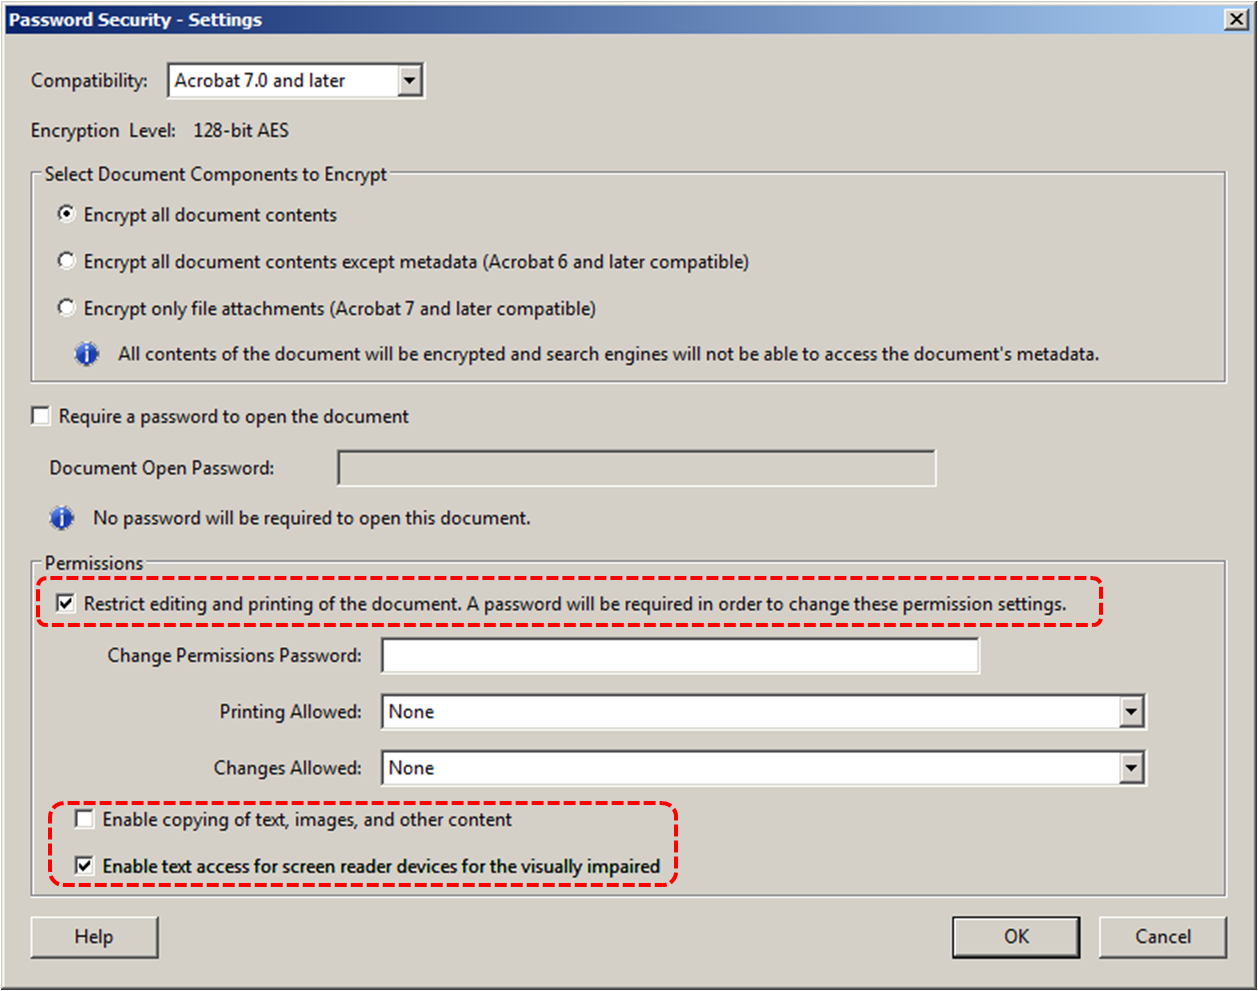 Image demonstrates location of Restrict editing and printing option, Enable copying of text option, and Enable text access for screen readers option in the Password Security - Settings dialog.